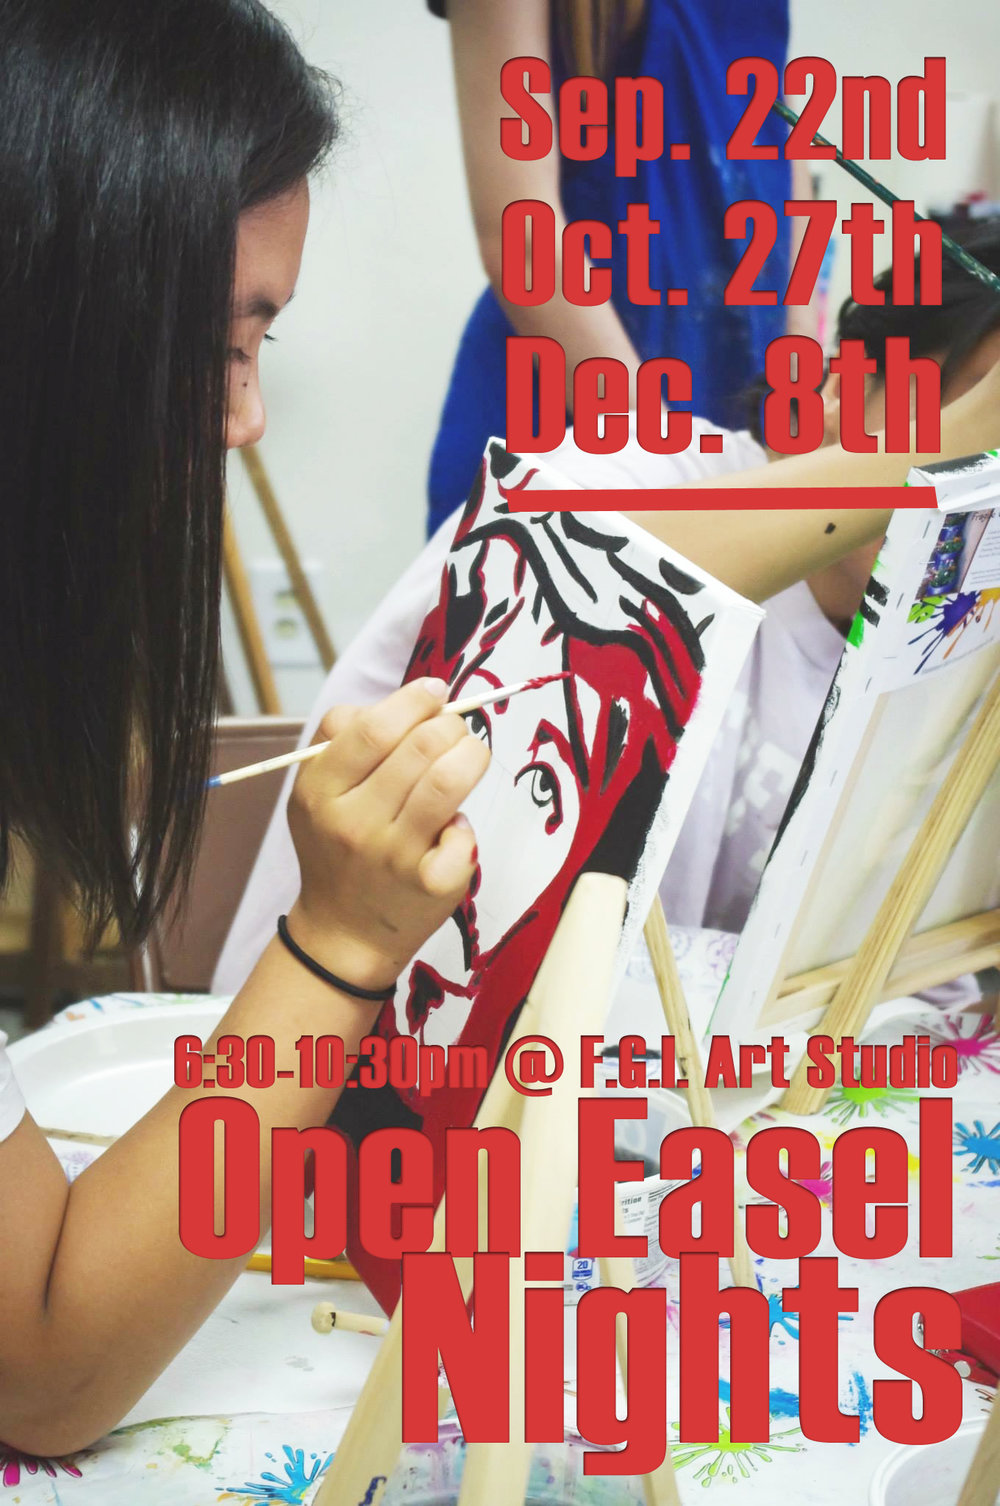 Open Easel Nights ad_edited-1.jpg